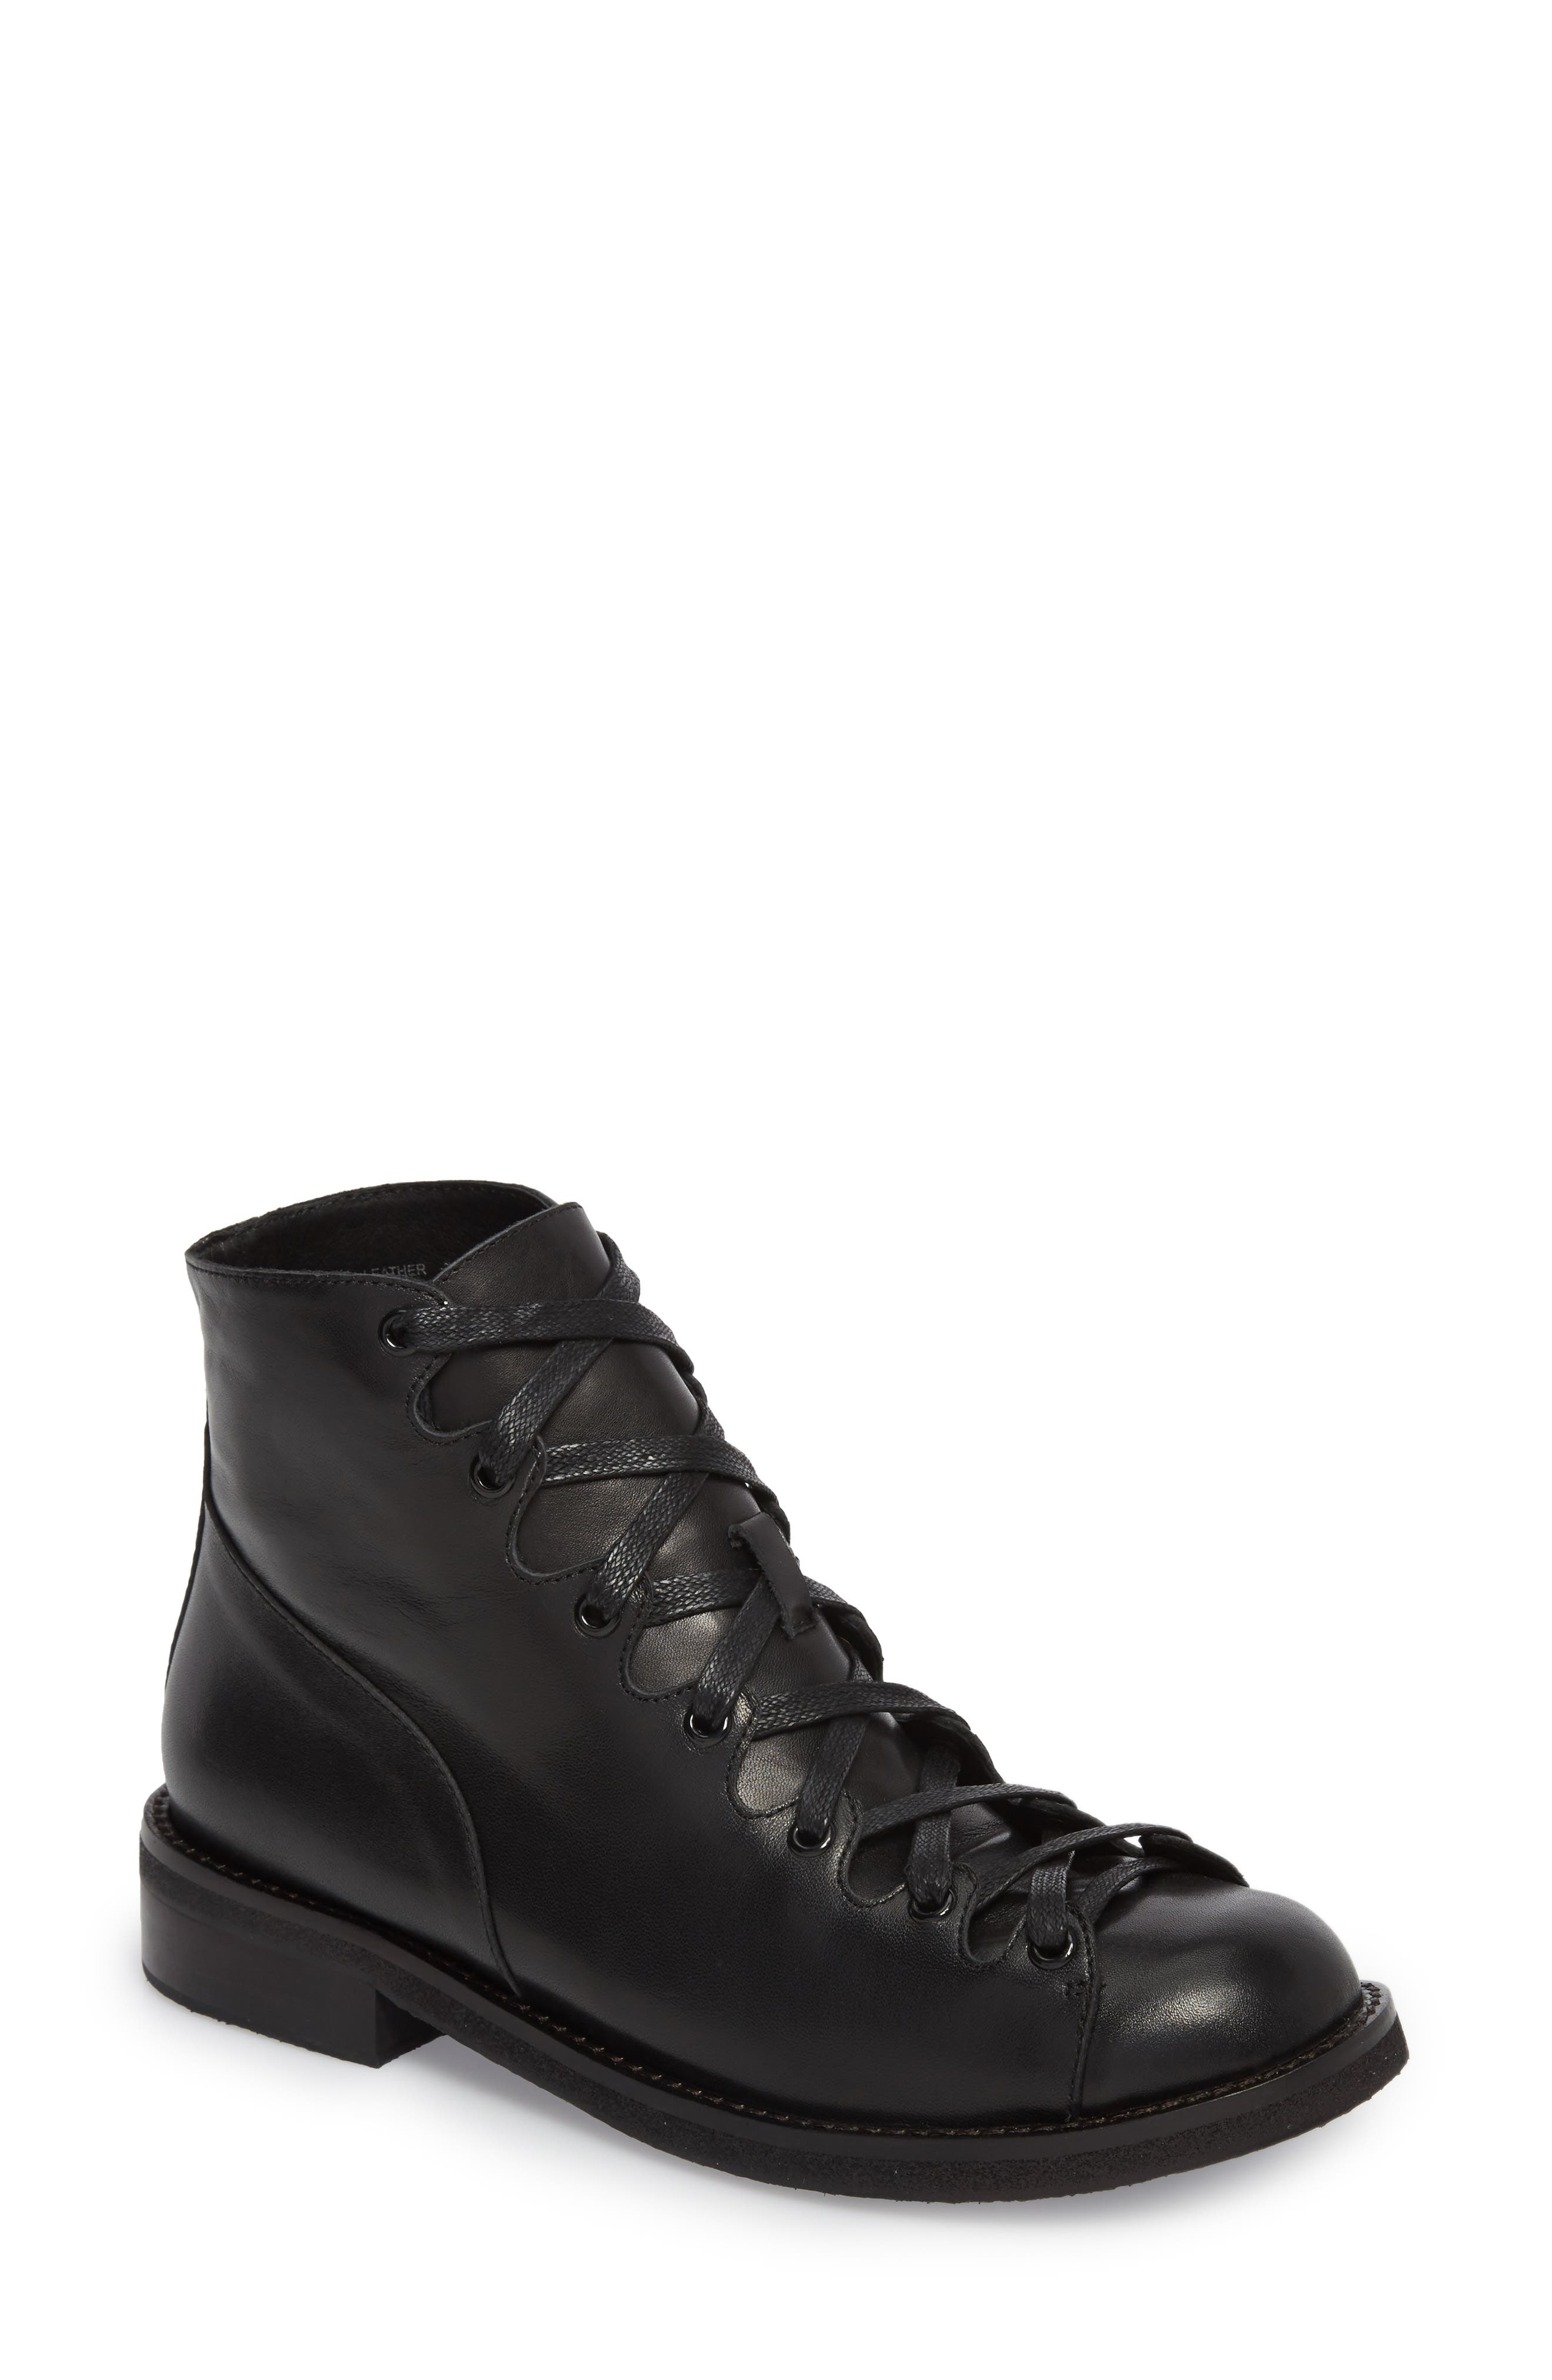 Jess Ghillie Combat Boot,                         Main,                         color, 001